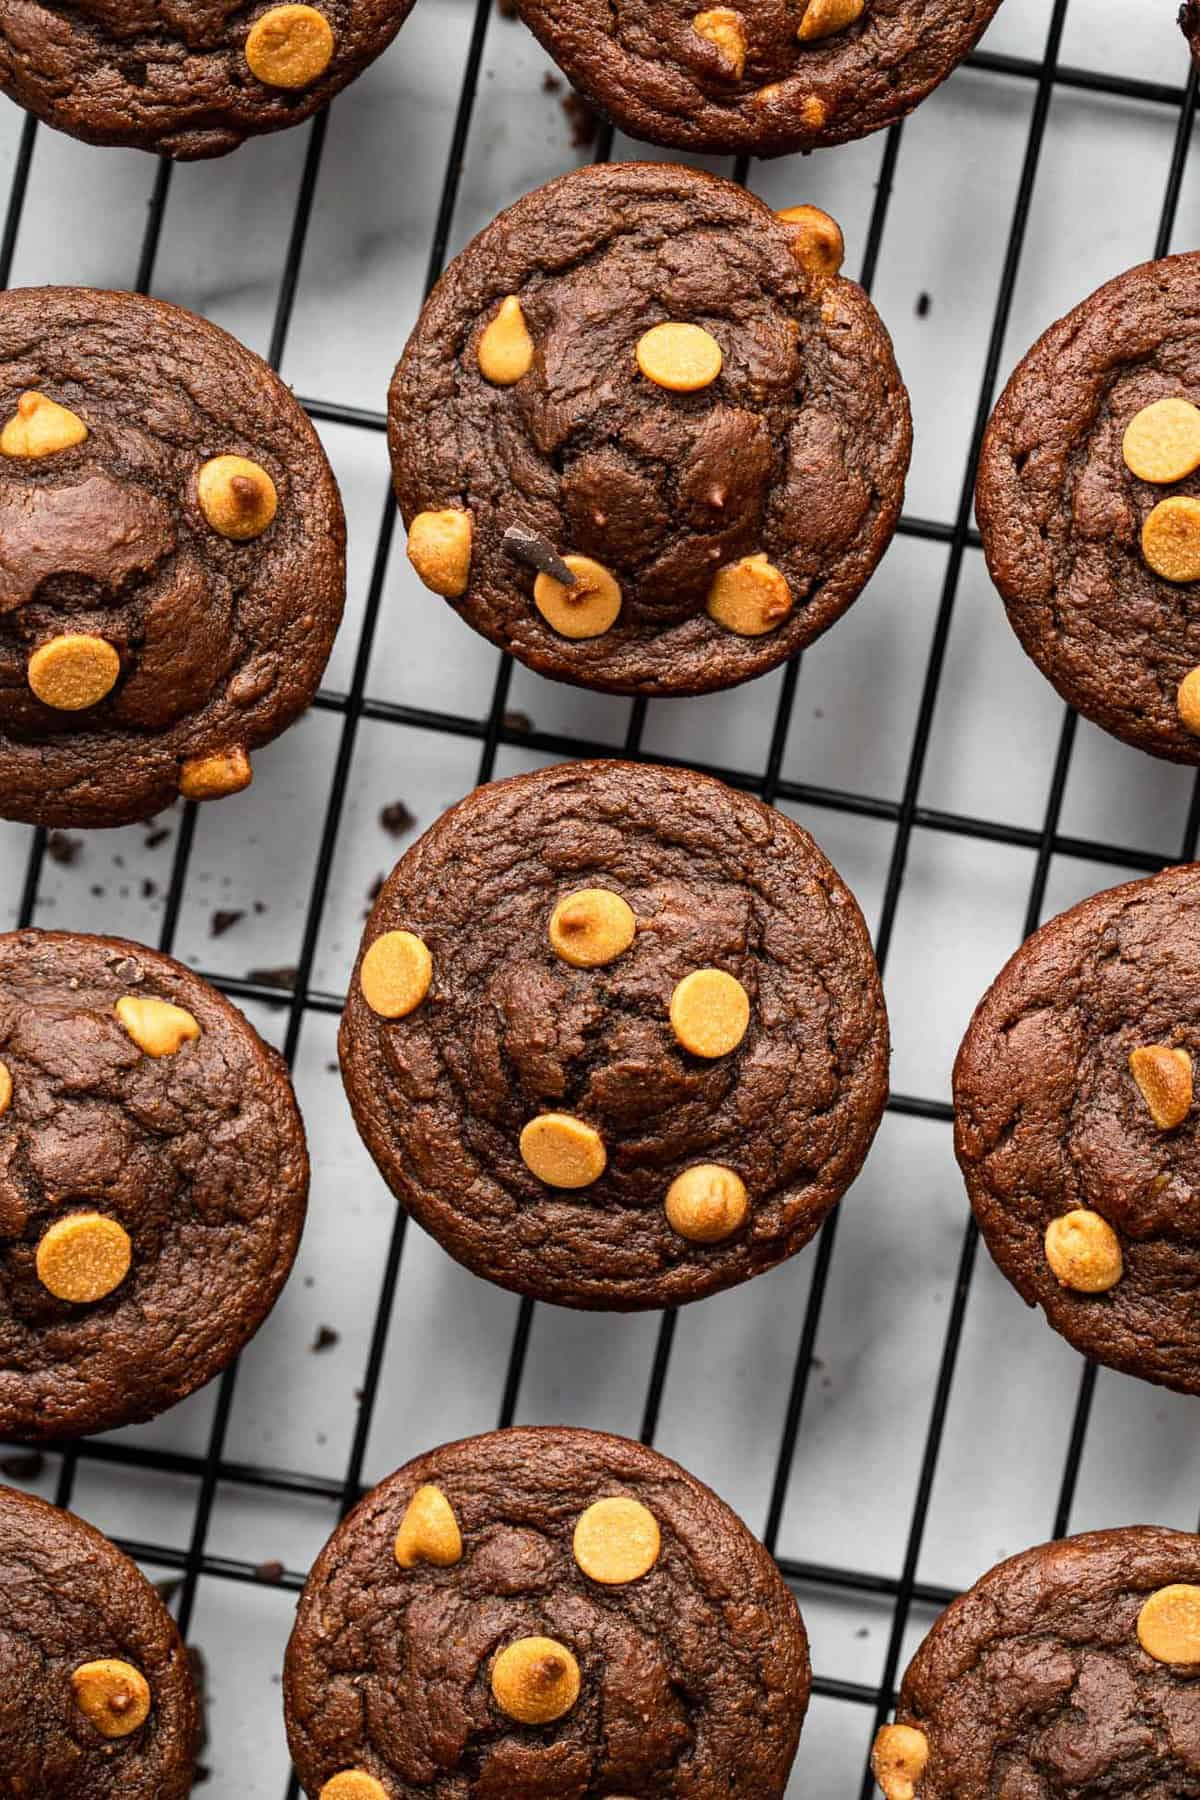 Peanut butter chocolate chip muffins on a cooling rack